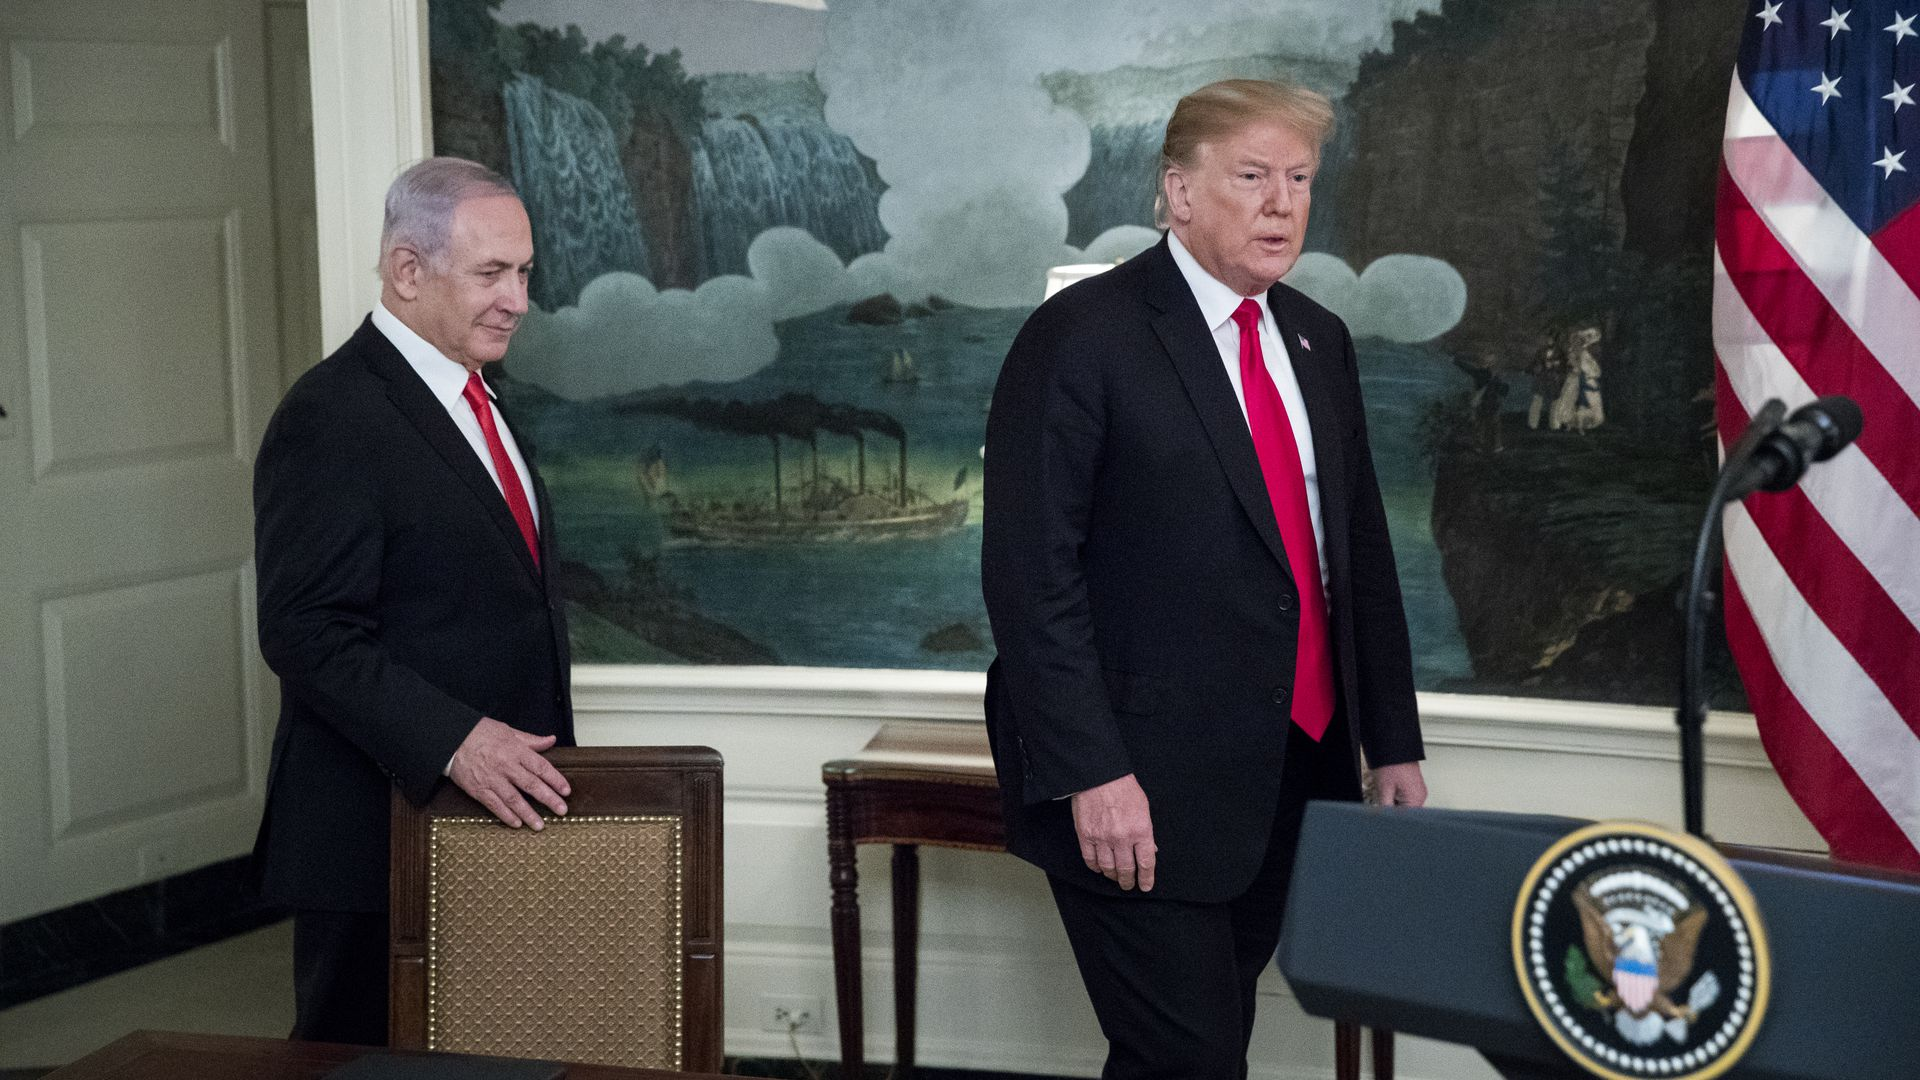 Trump after Netanyahu election setback: Our relations are with Israel